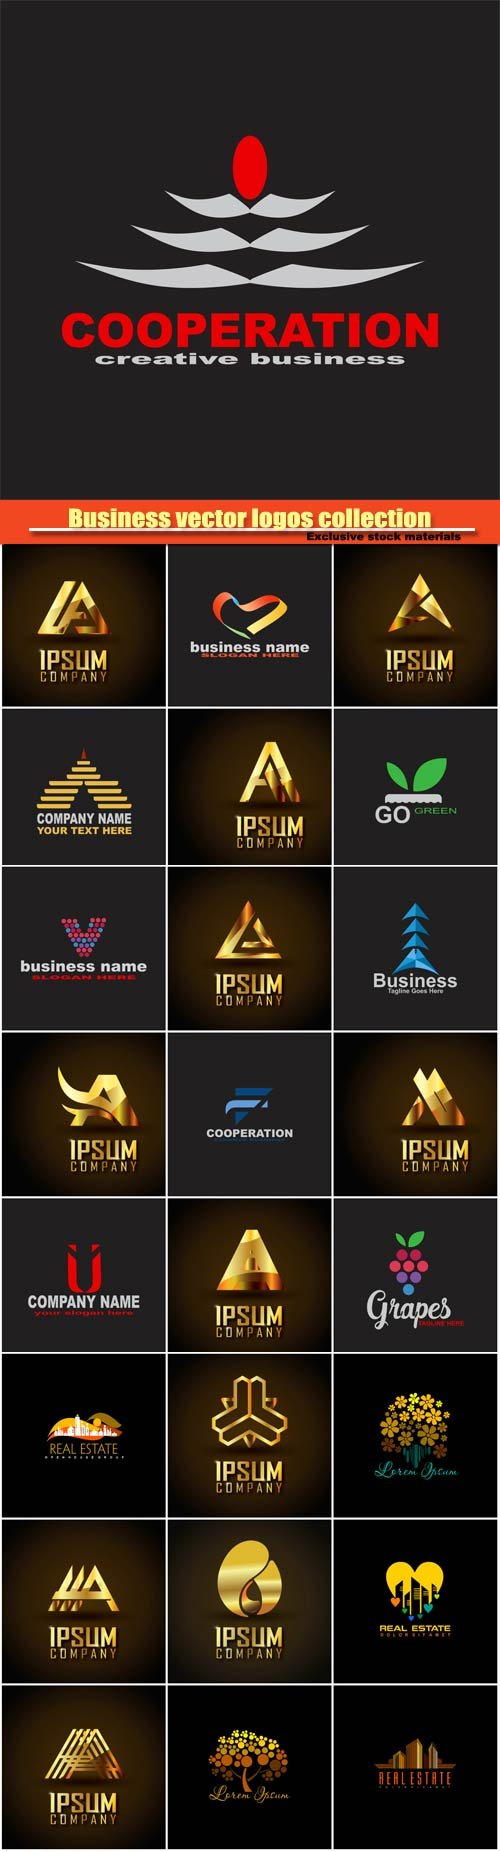 Business vector logos templates collection